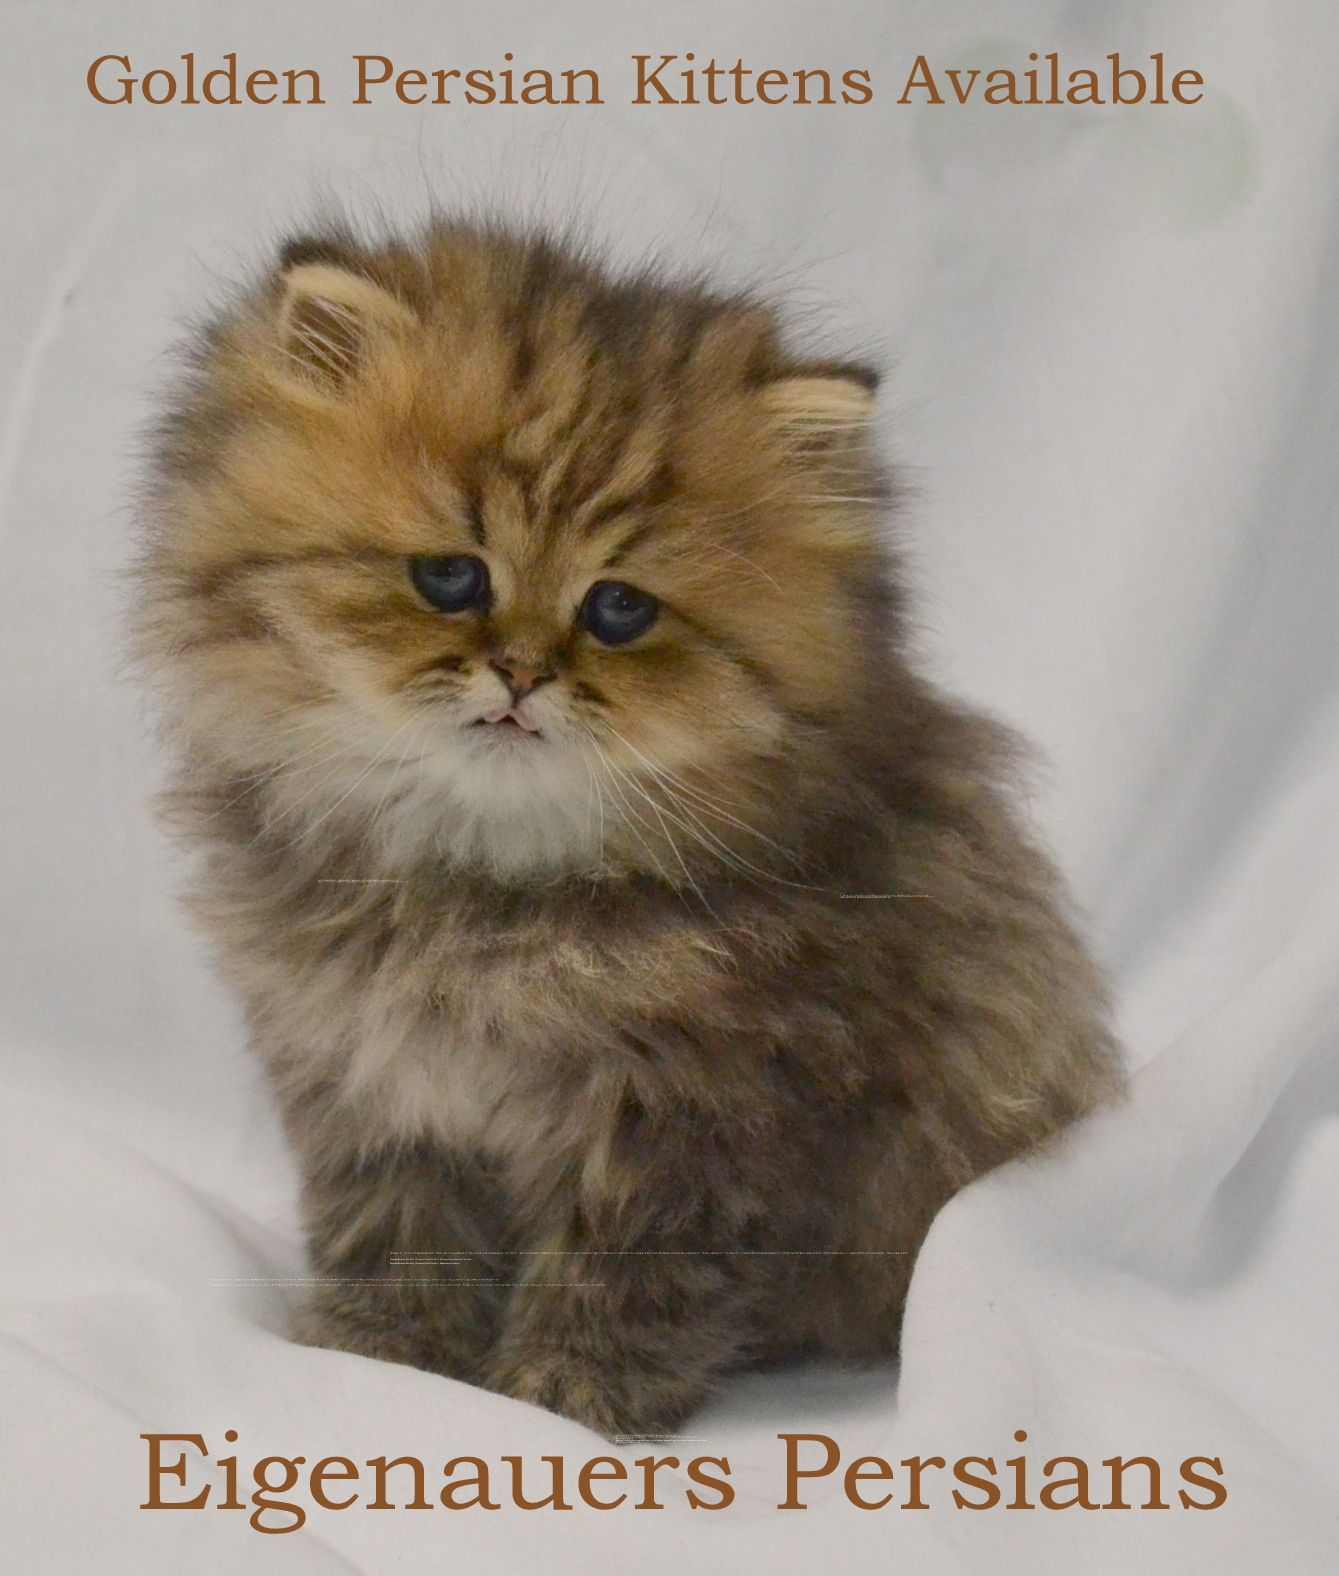 Persian Kittens For Sale Persian Cats For Sale Golden Persian Kittens For Sale Silver Persian Kittens For S Persian Kittens Persian Kittens For Sale Kittens